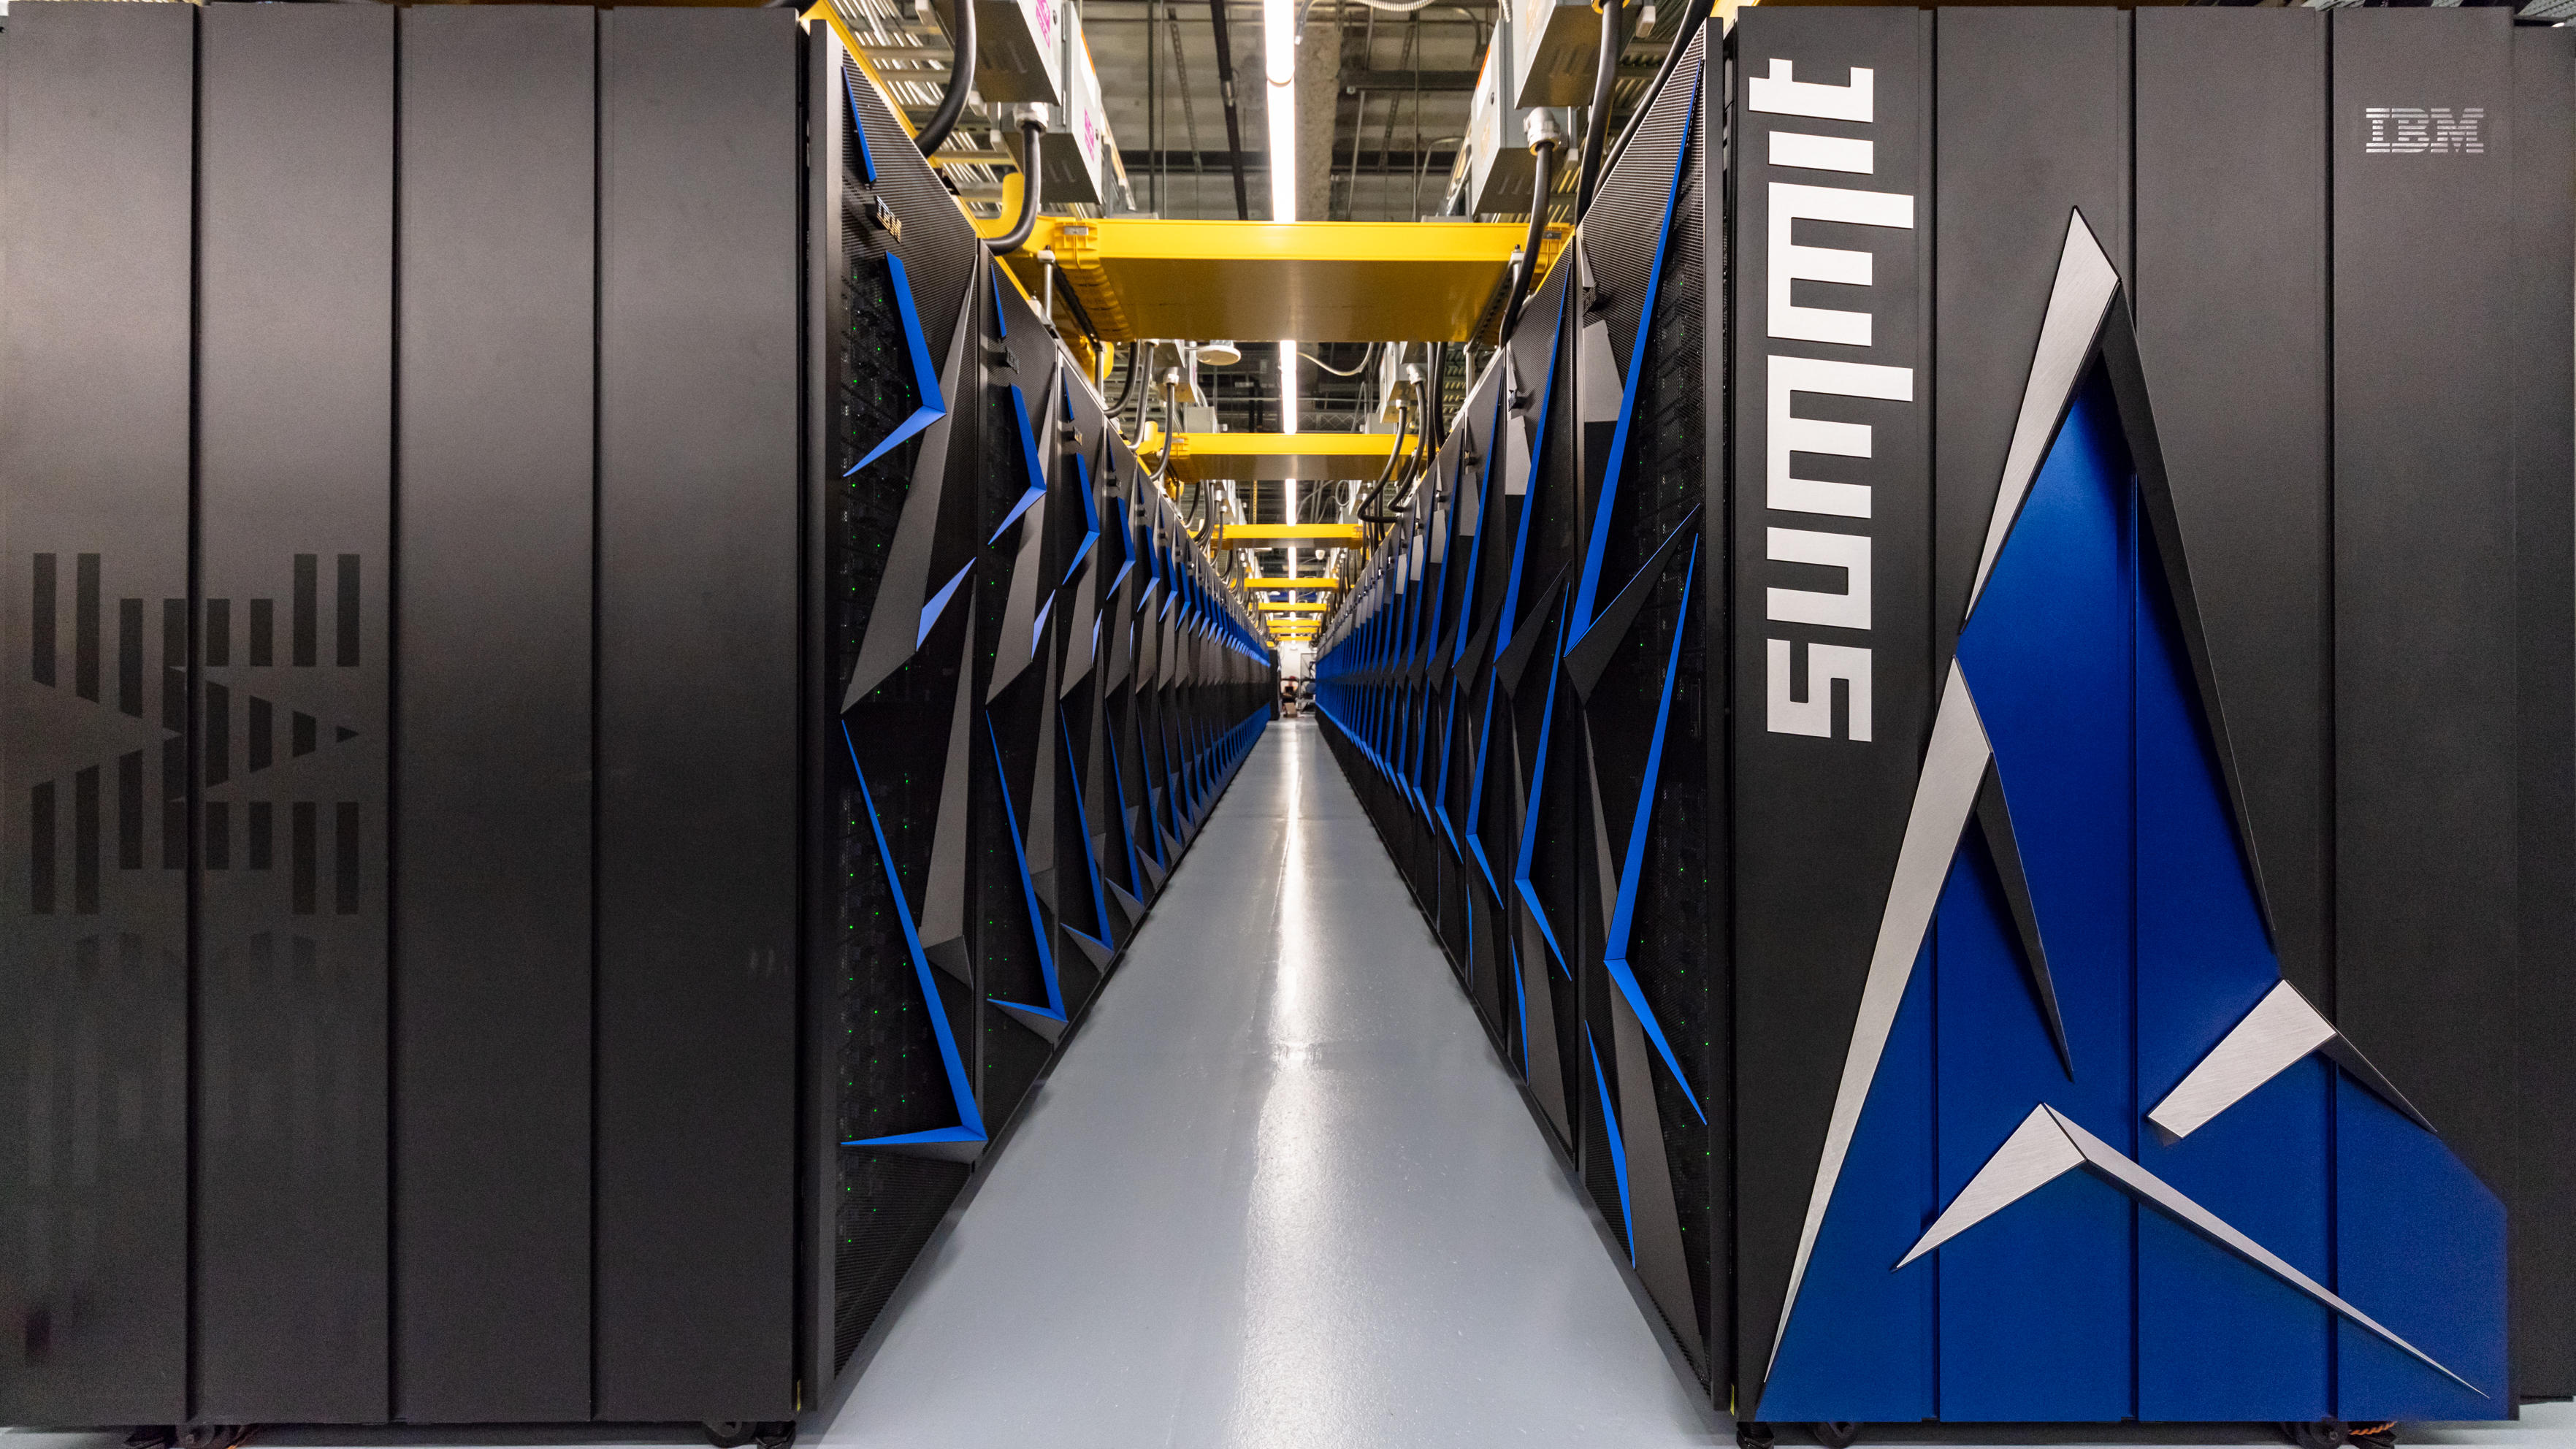 IBM's Summit supercomputer at Oak Ridge National Laboratory has been used to search for medicine to fight COVID-19.